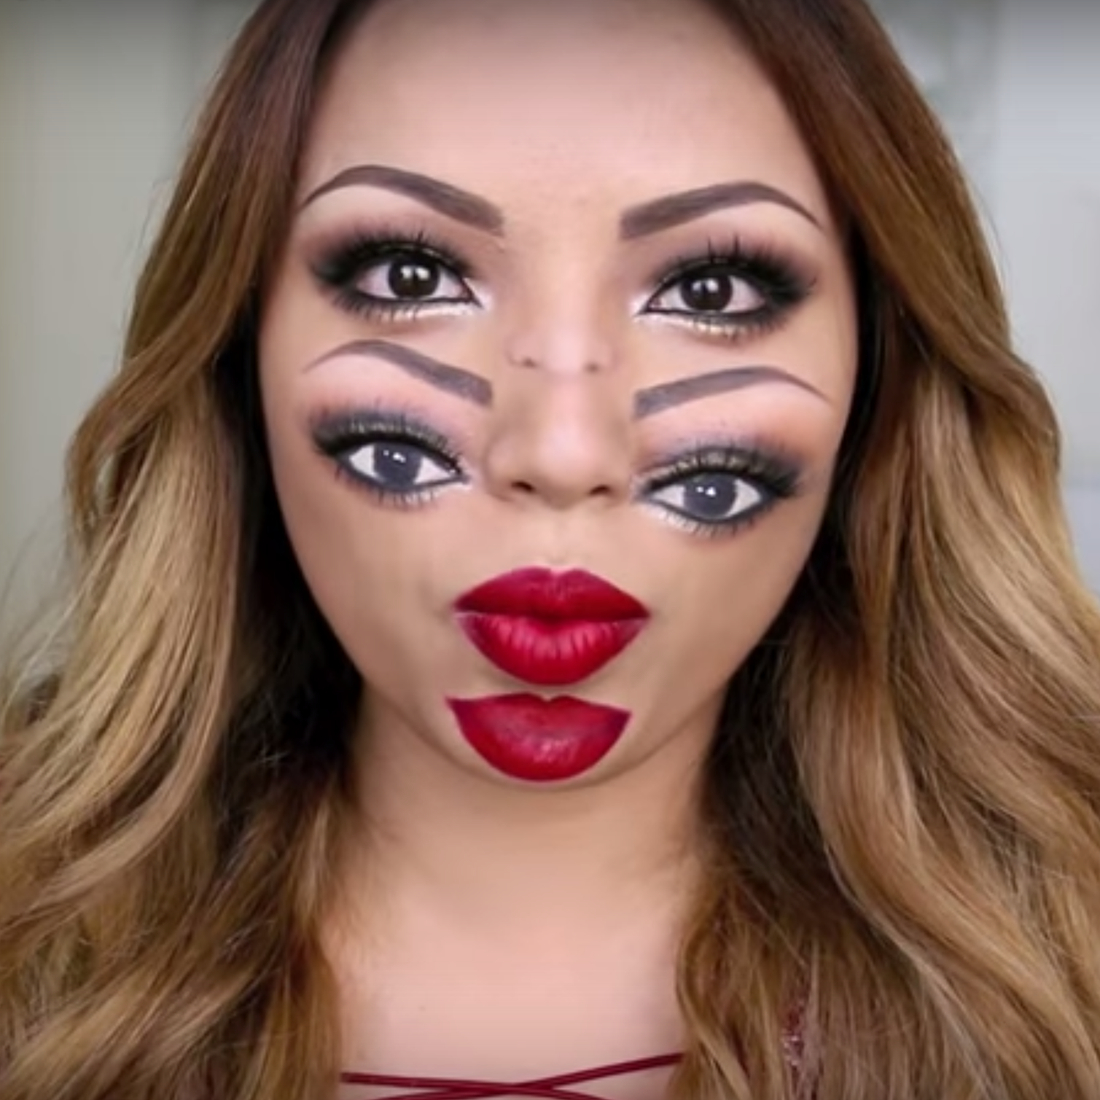 Halloween Makeup Ideas Easy Makeup Looks.Halloween Eye Makeup Designs 35 Easy Halloween Makeup Ideas